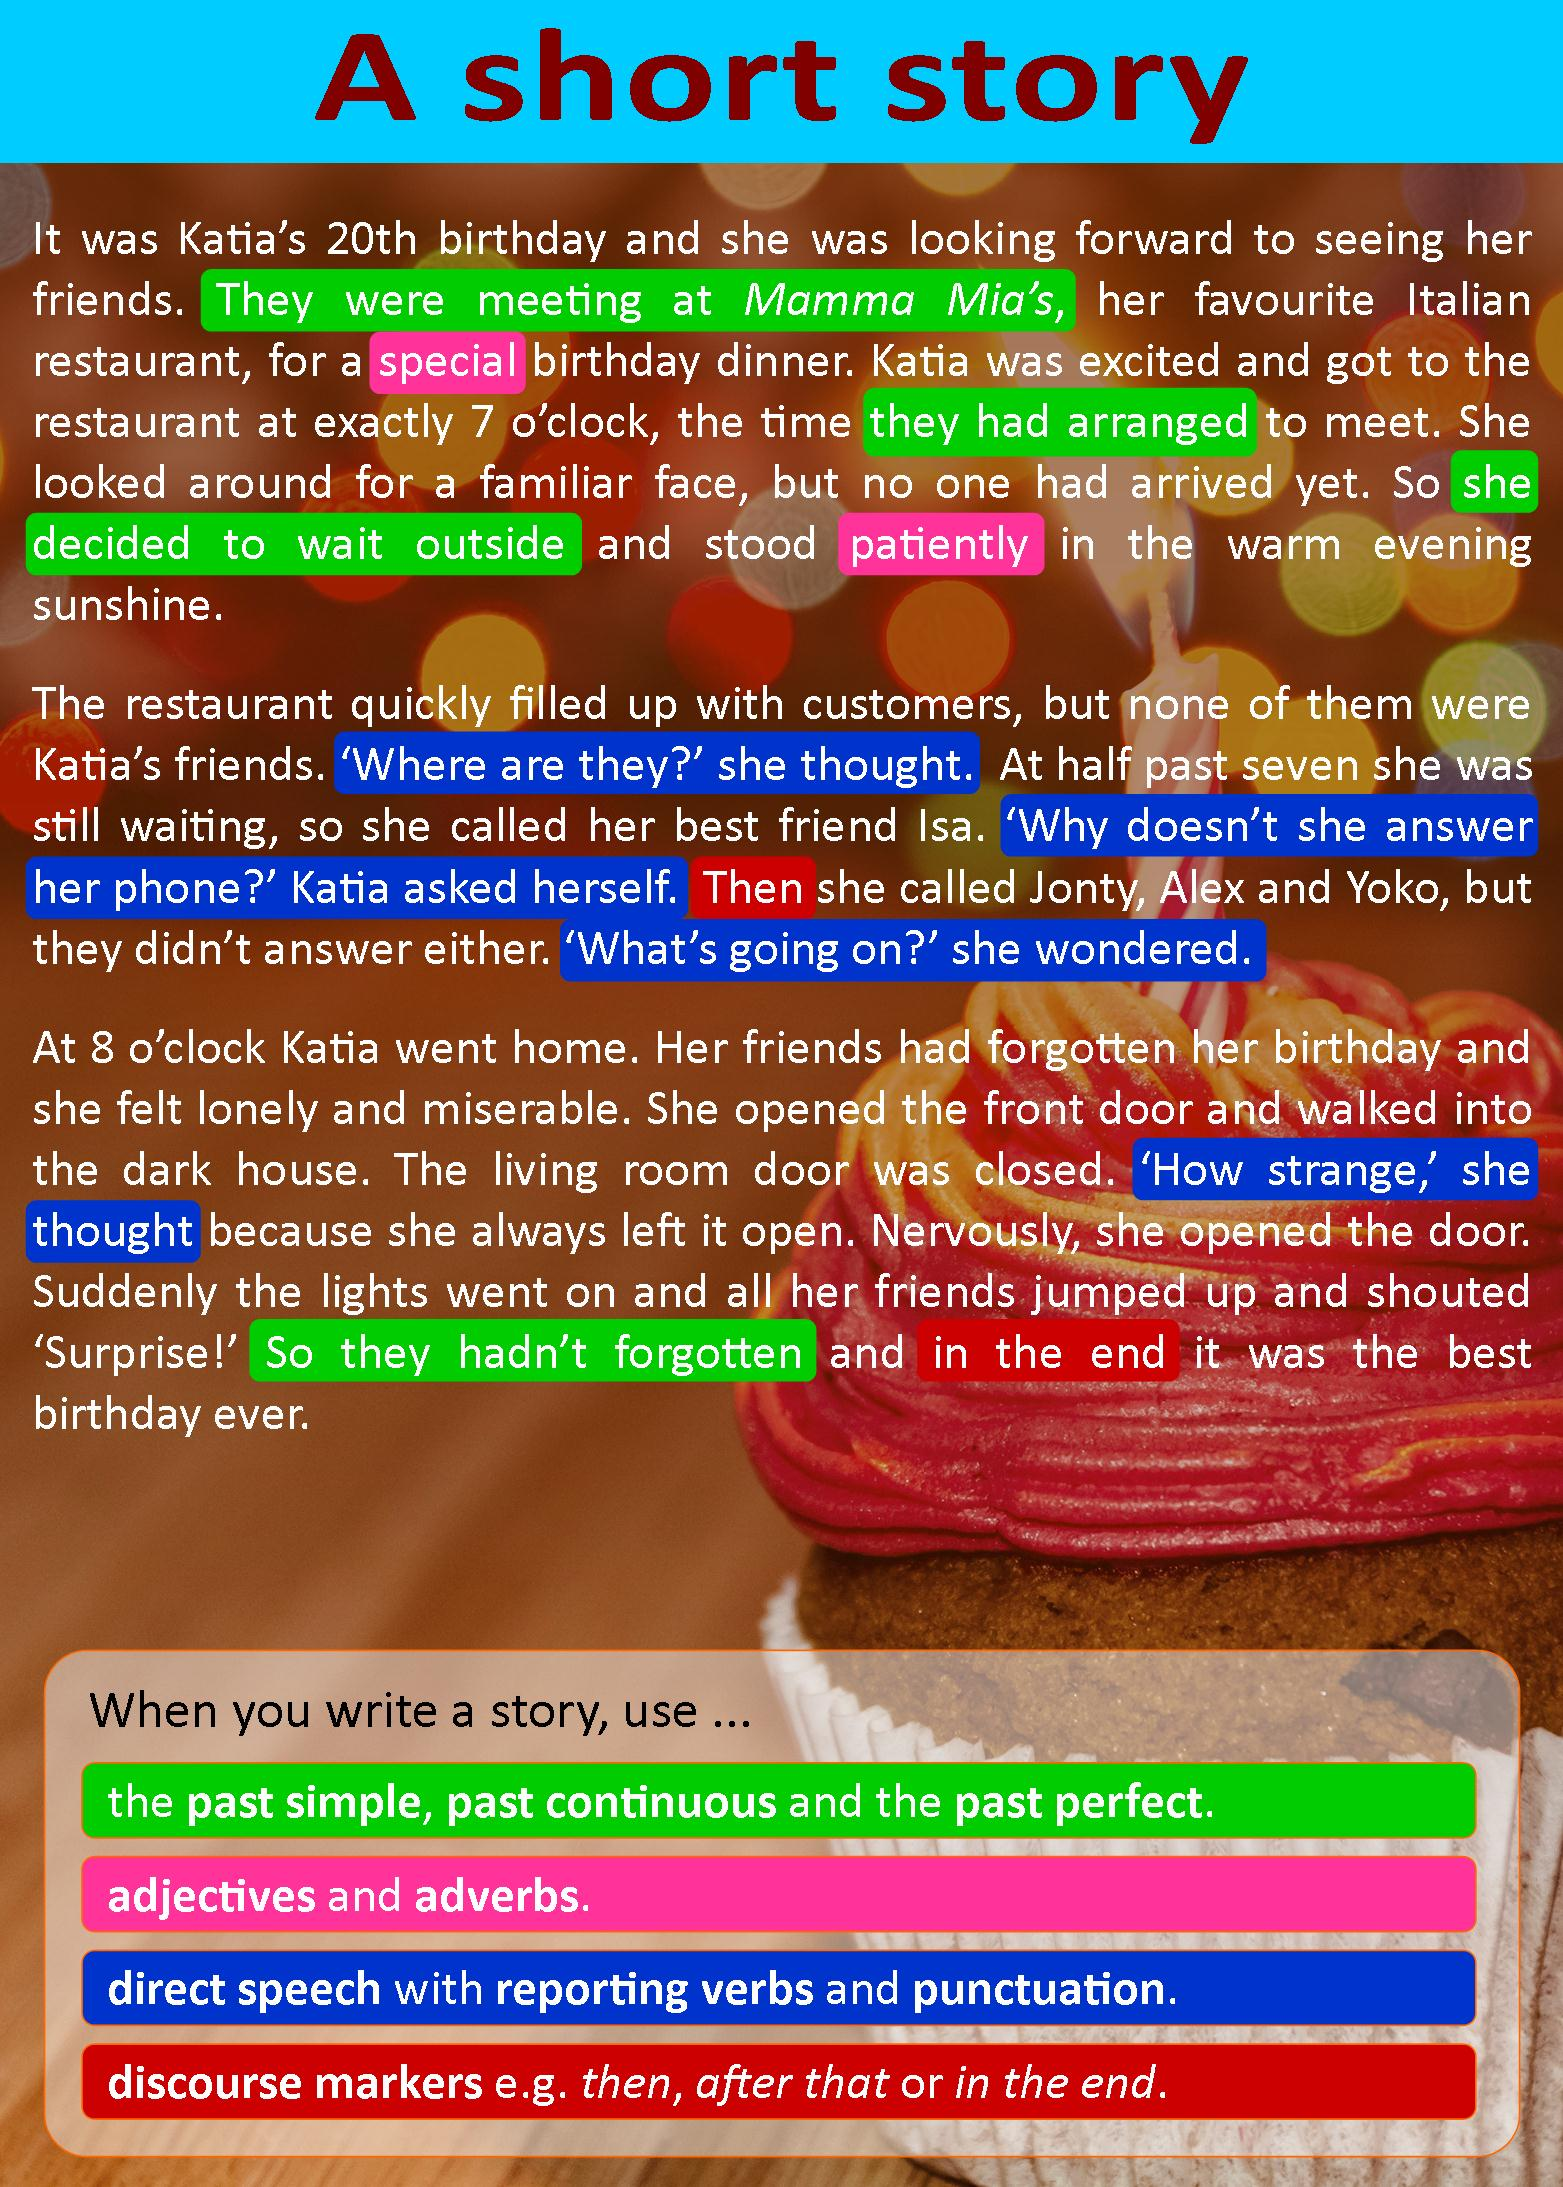 hight resolution of A short story   LearnEnglish Teens - British Council